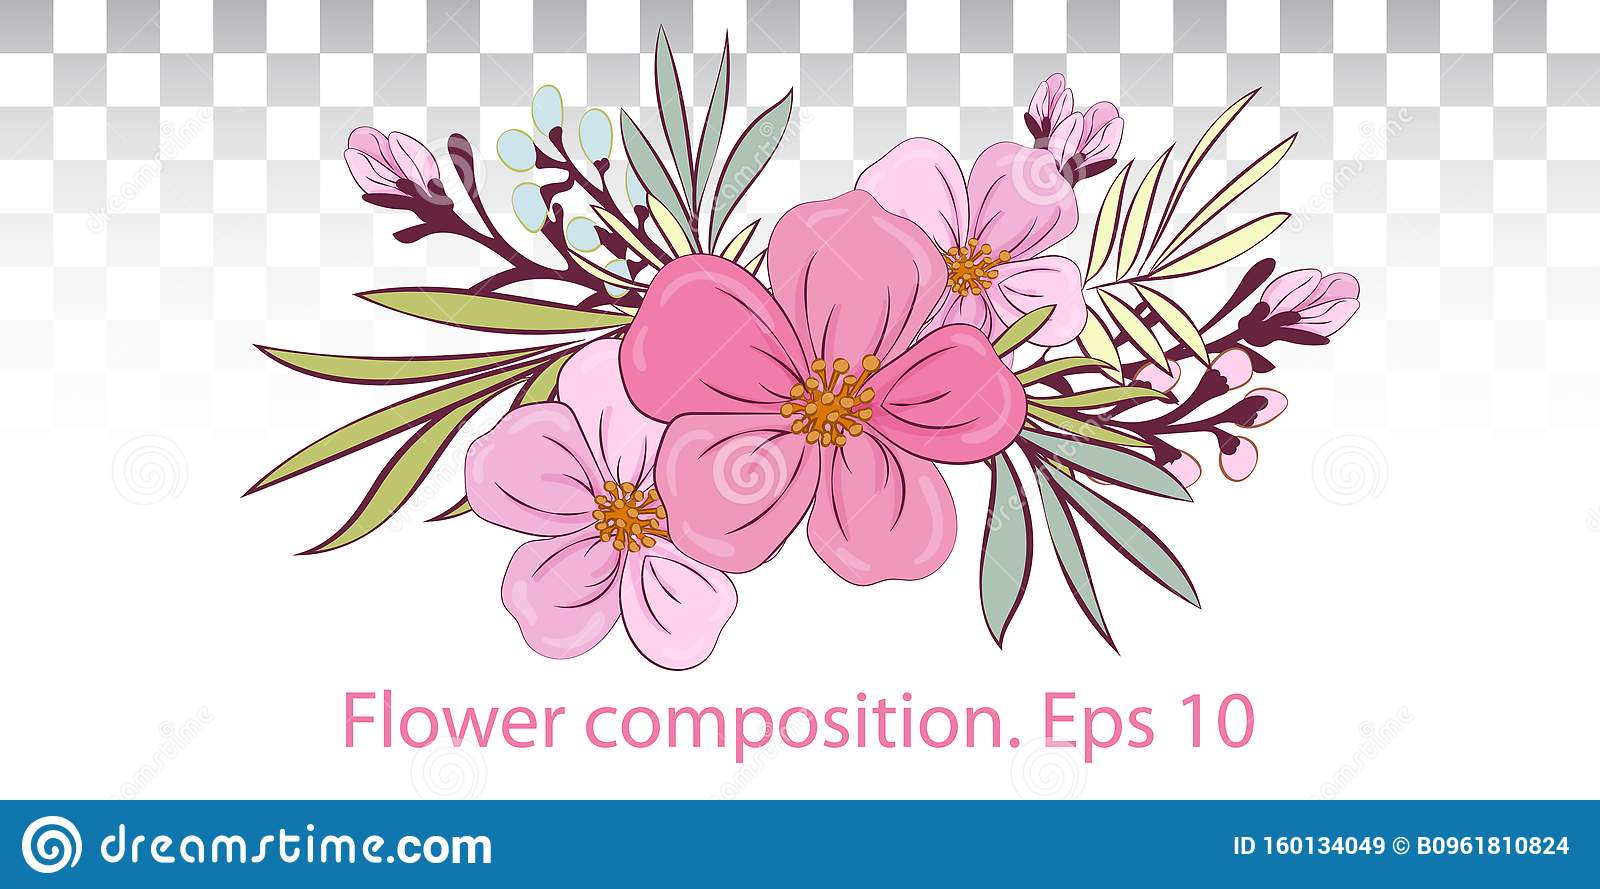 Vector Wedding Invite Invitation Greeting Card Design Floral Bouquet With Pink Flowers And Leaves Of Plants Vector Eps10 Stock Vector Illustration Of Anniversary Frame 160134049